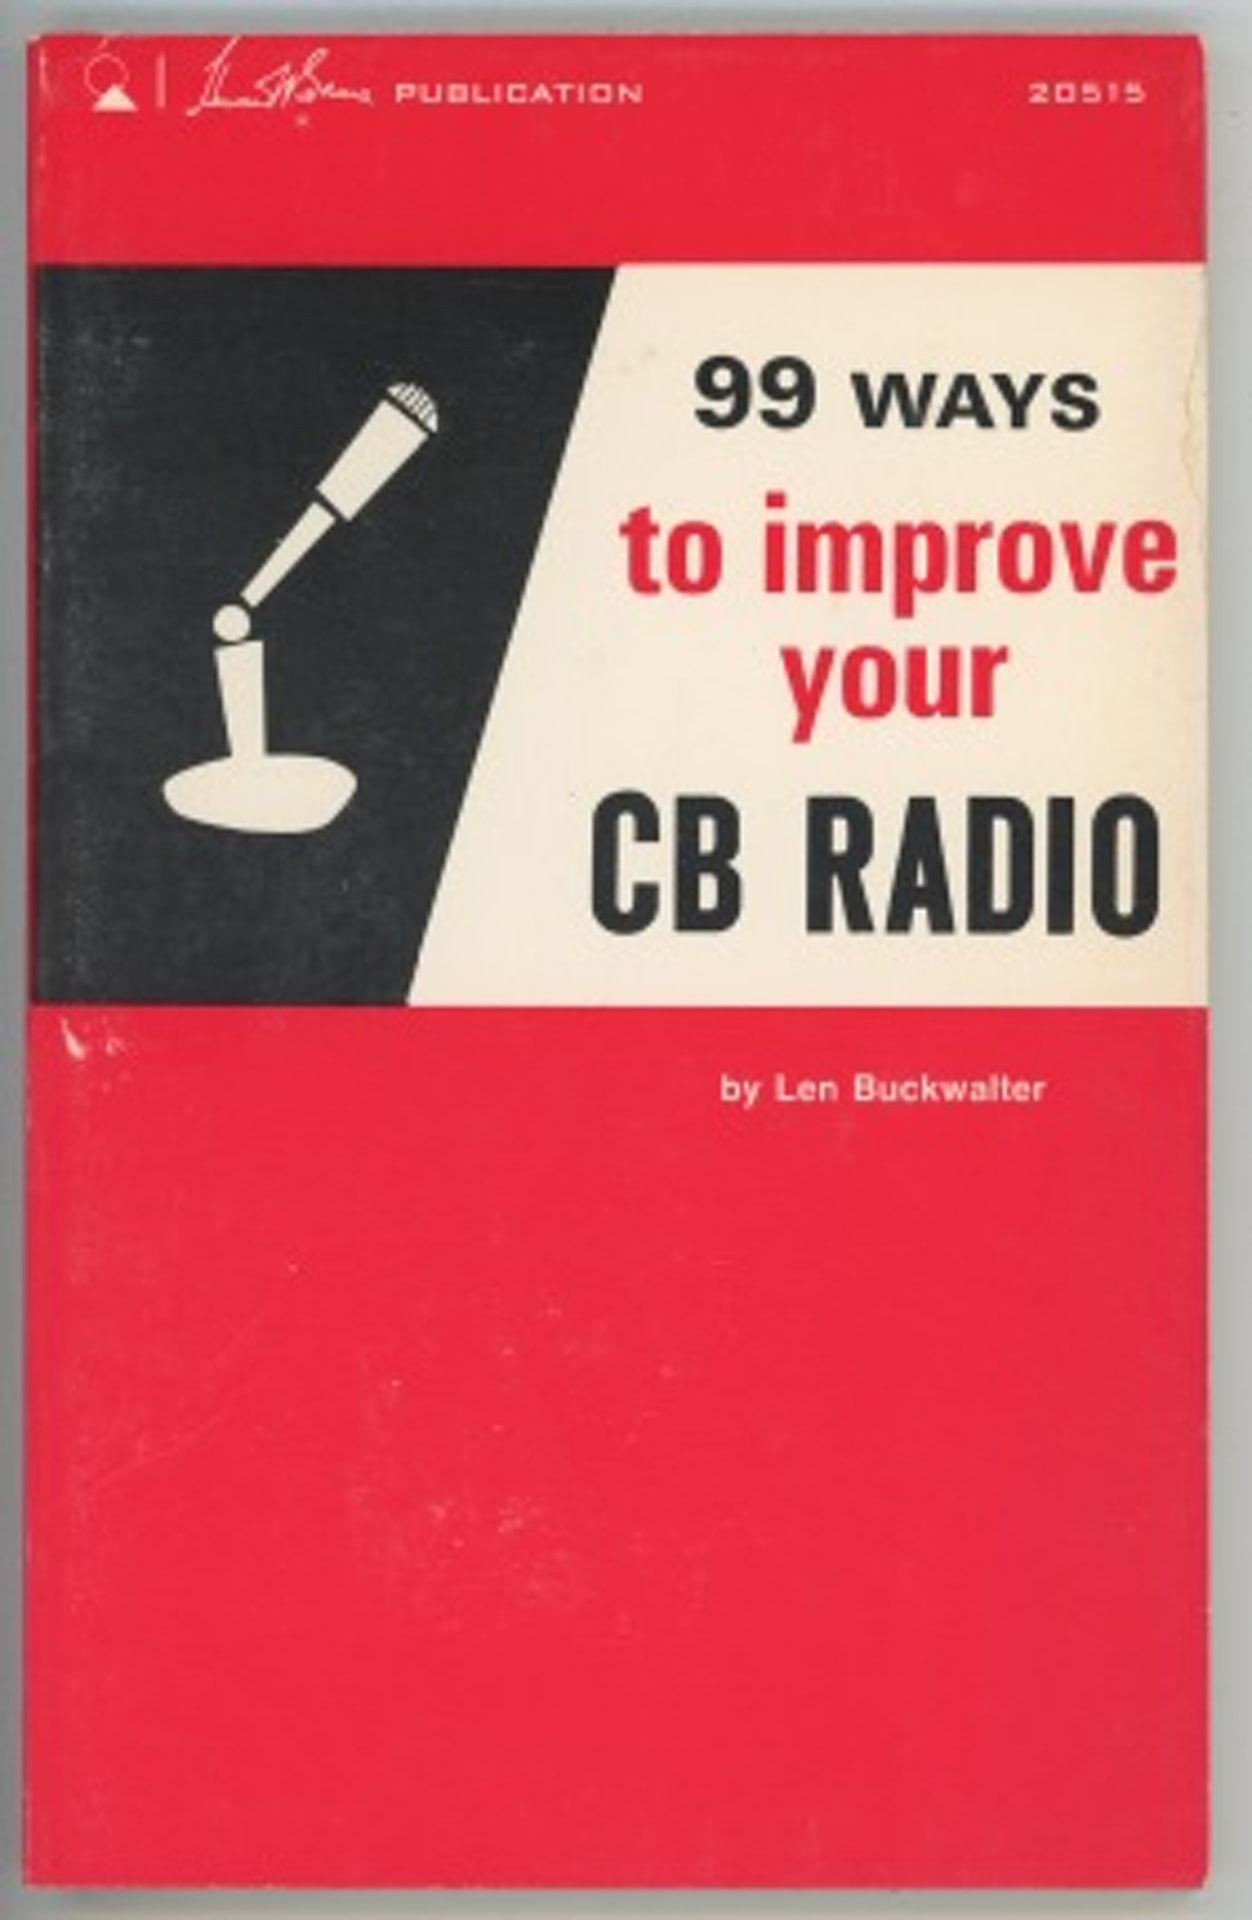 99 Ways to Improve your CB Radio